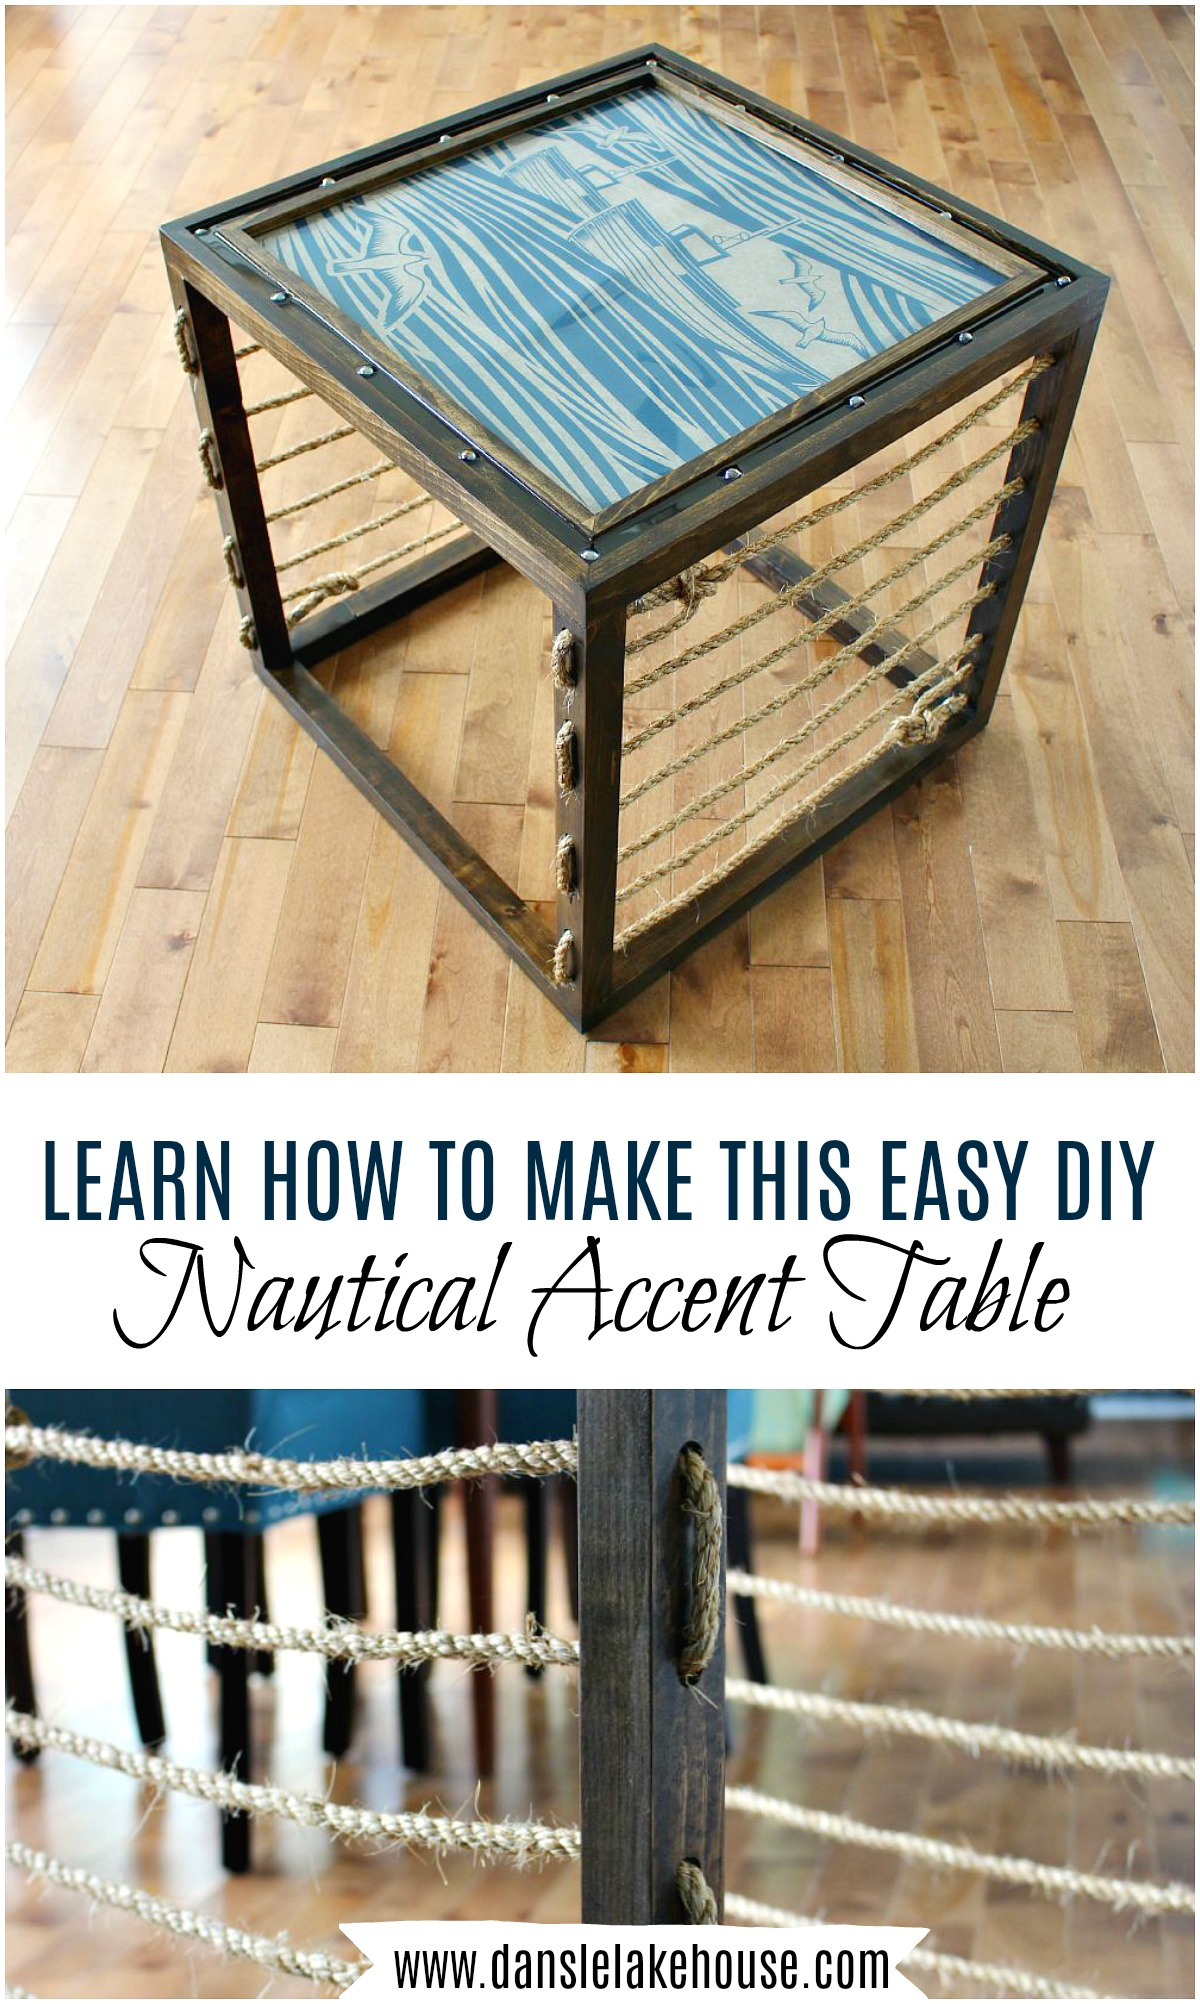 diy nautical accent table dans lakehouse learn how build side unique coffee tables and end tall wooden plant stand contemporary floor lamps with storage light shade rona patio